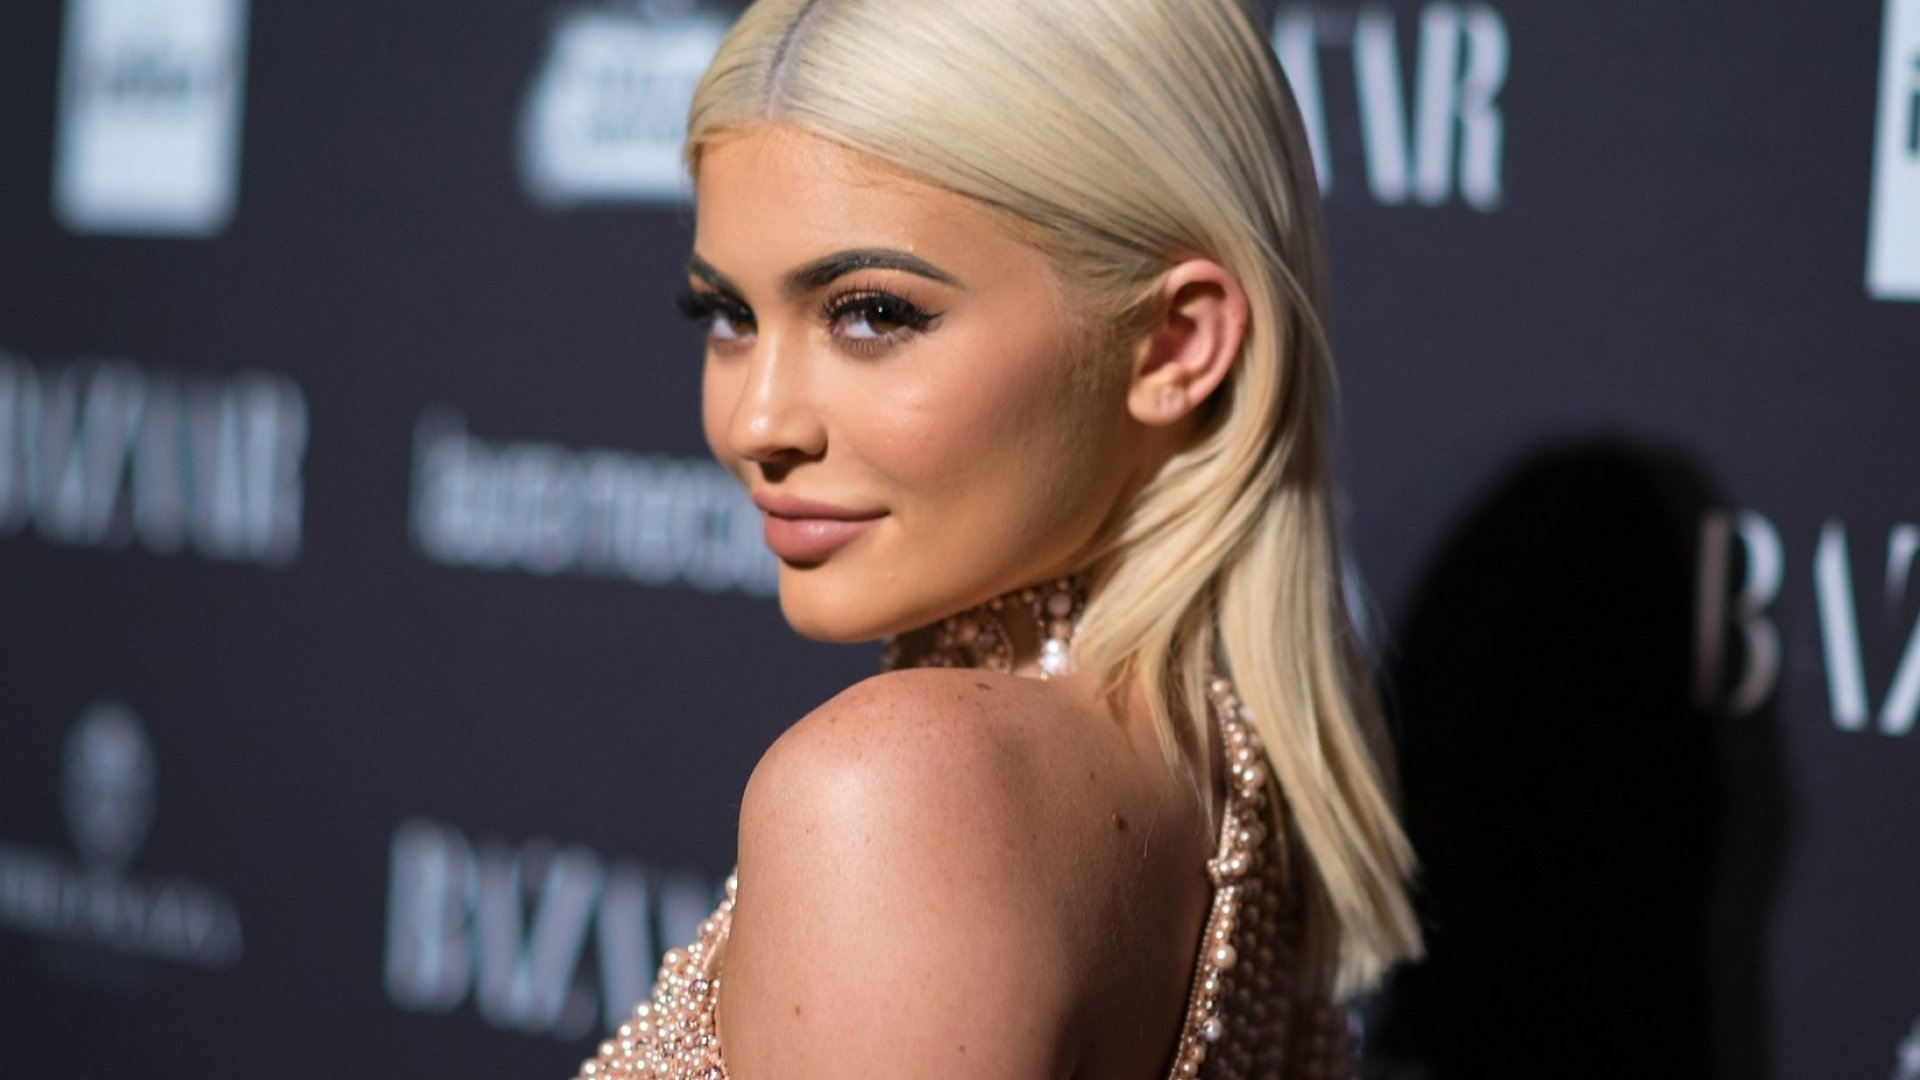 Even Dictionary.com Says Kylie Jenner Shouldn't Be Called Self-Made (But Then Who Should Exactly?)